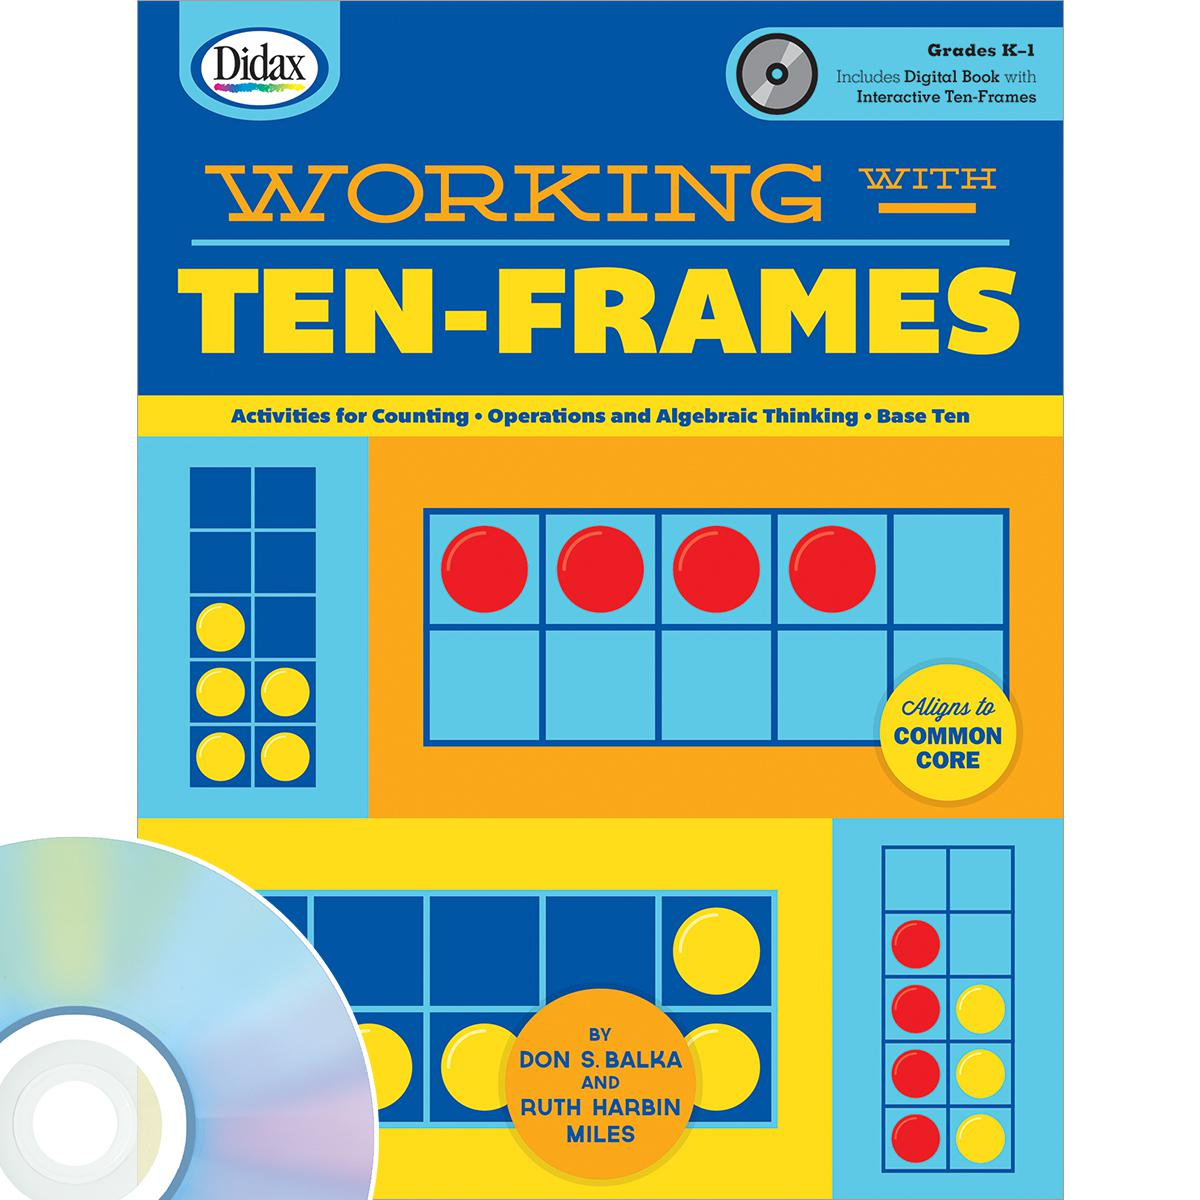 Working with Ten-Frames